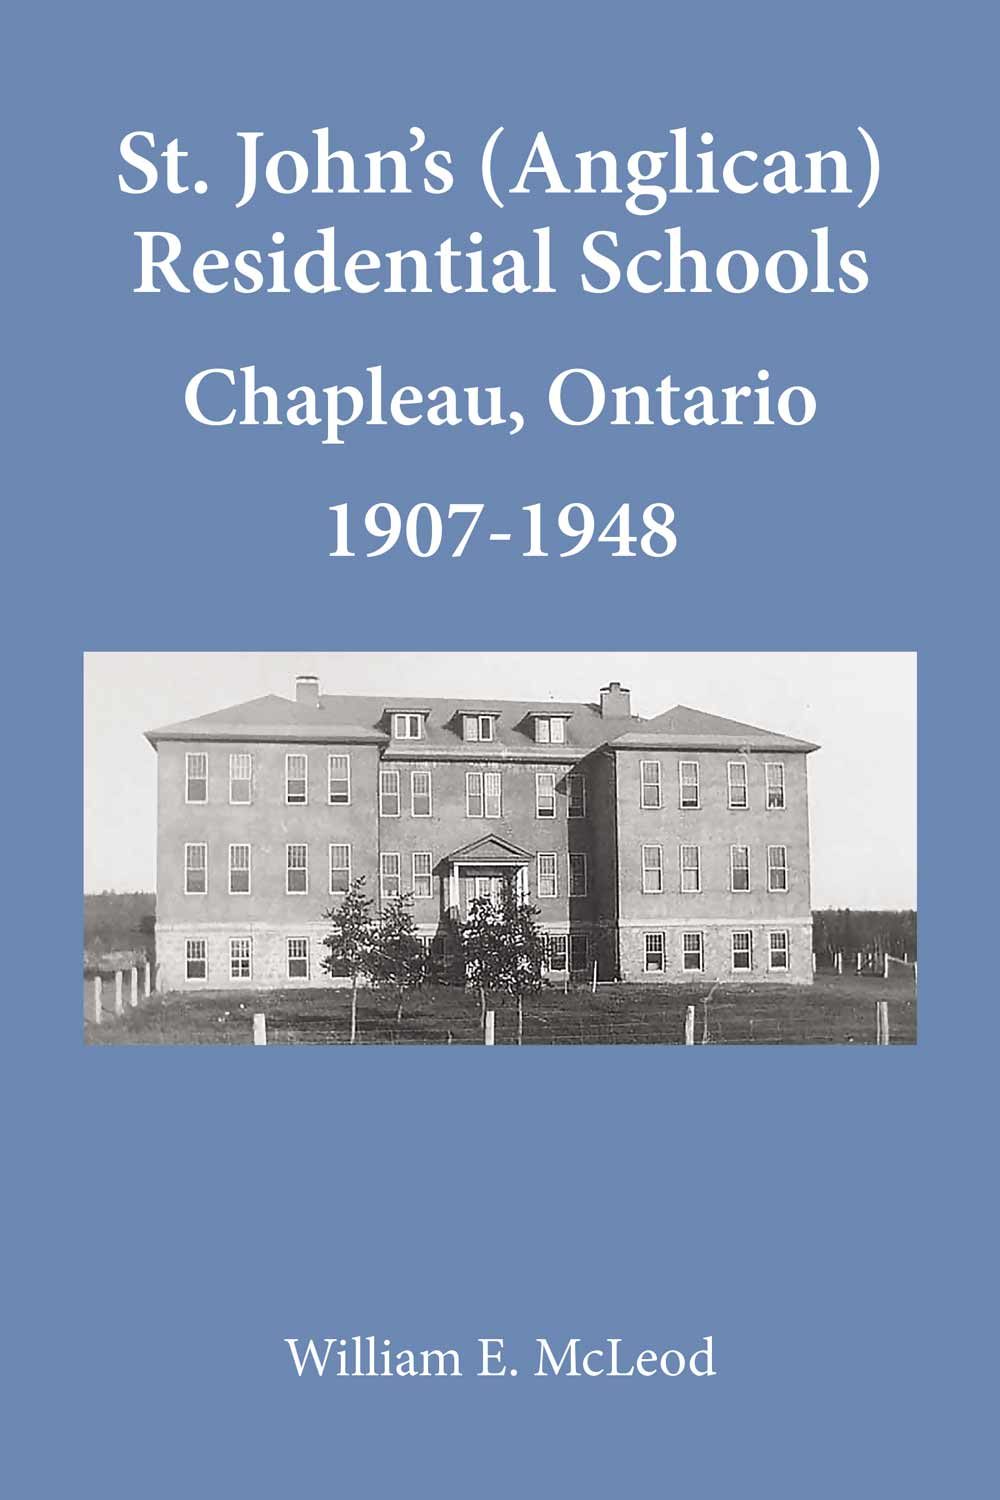 Saint Johns Anglican Residential Schools Book Cover